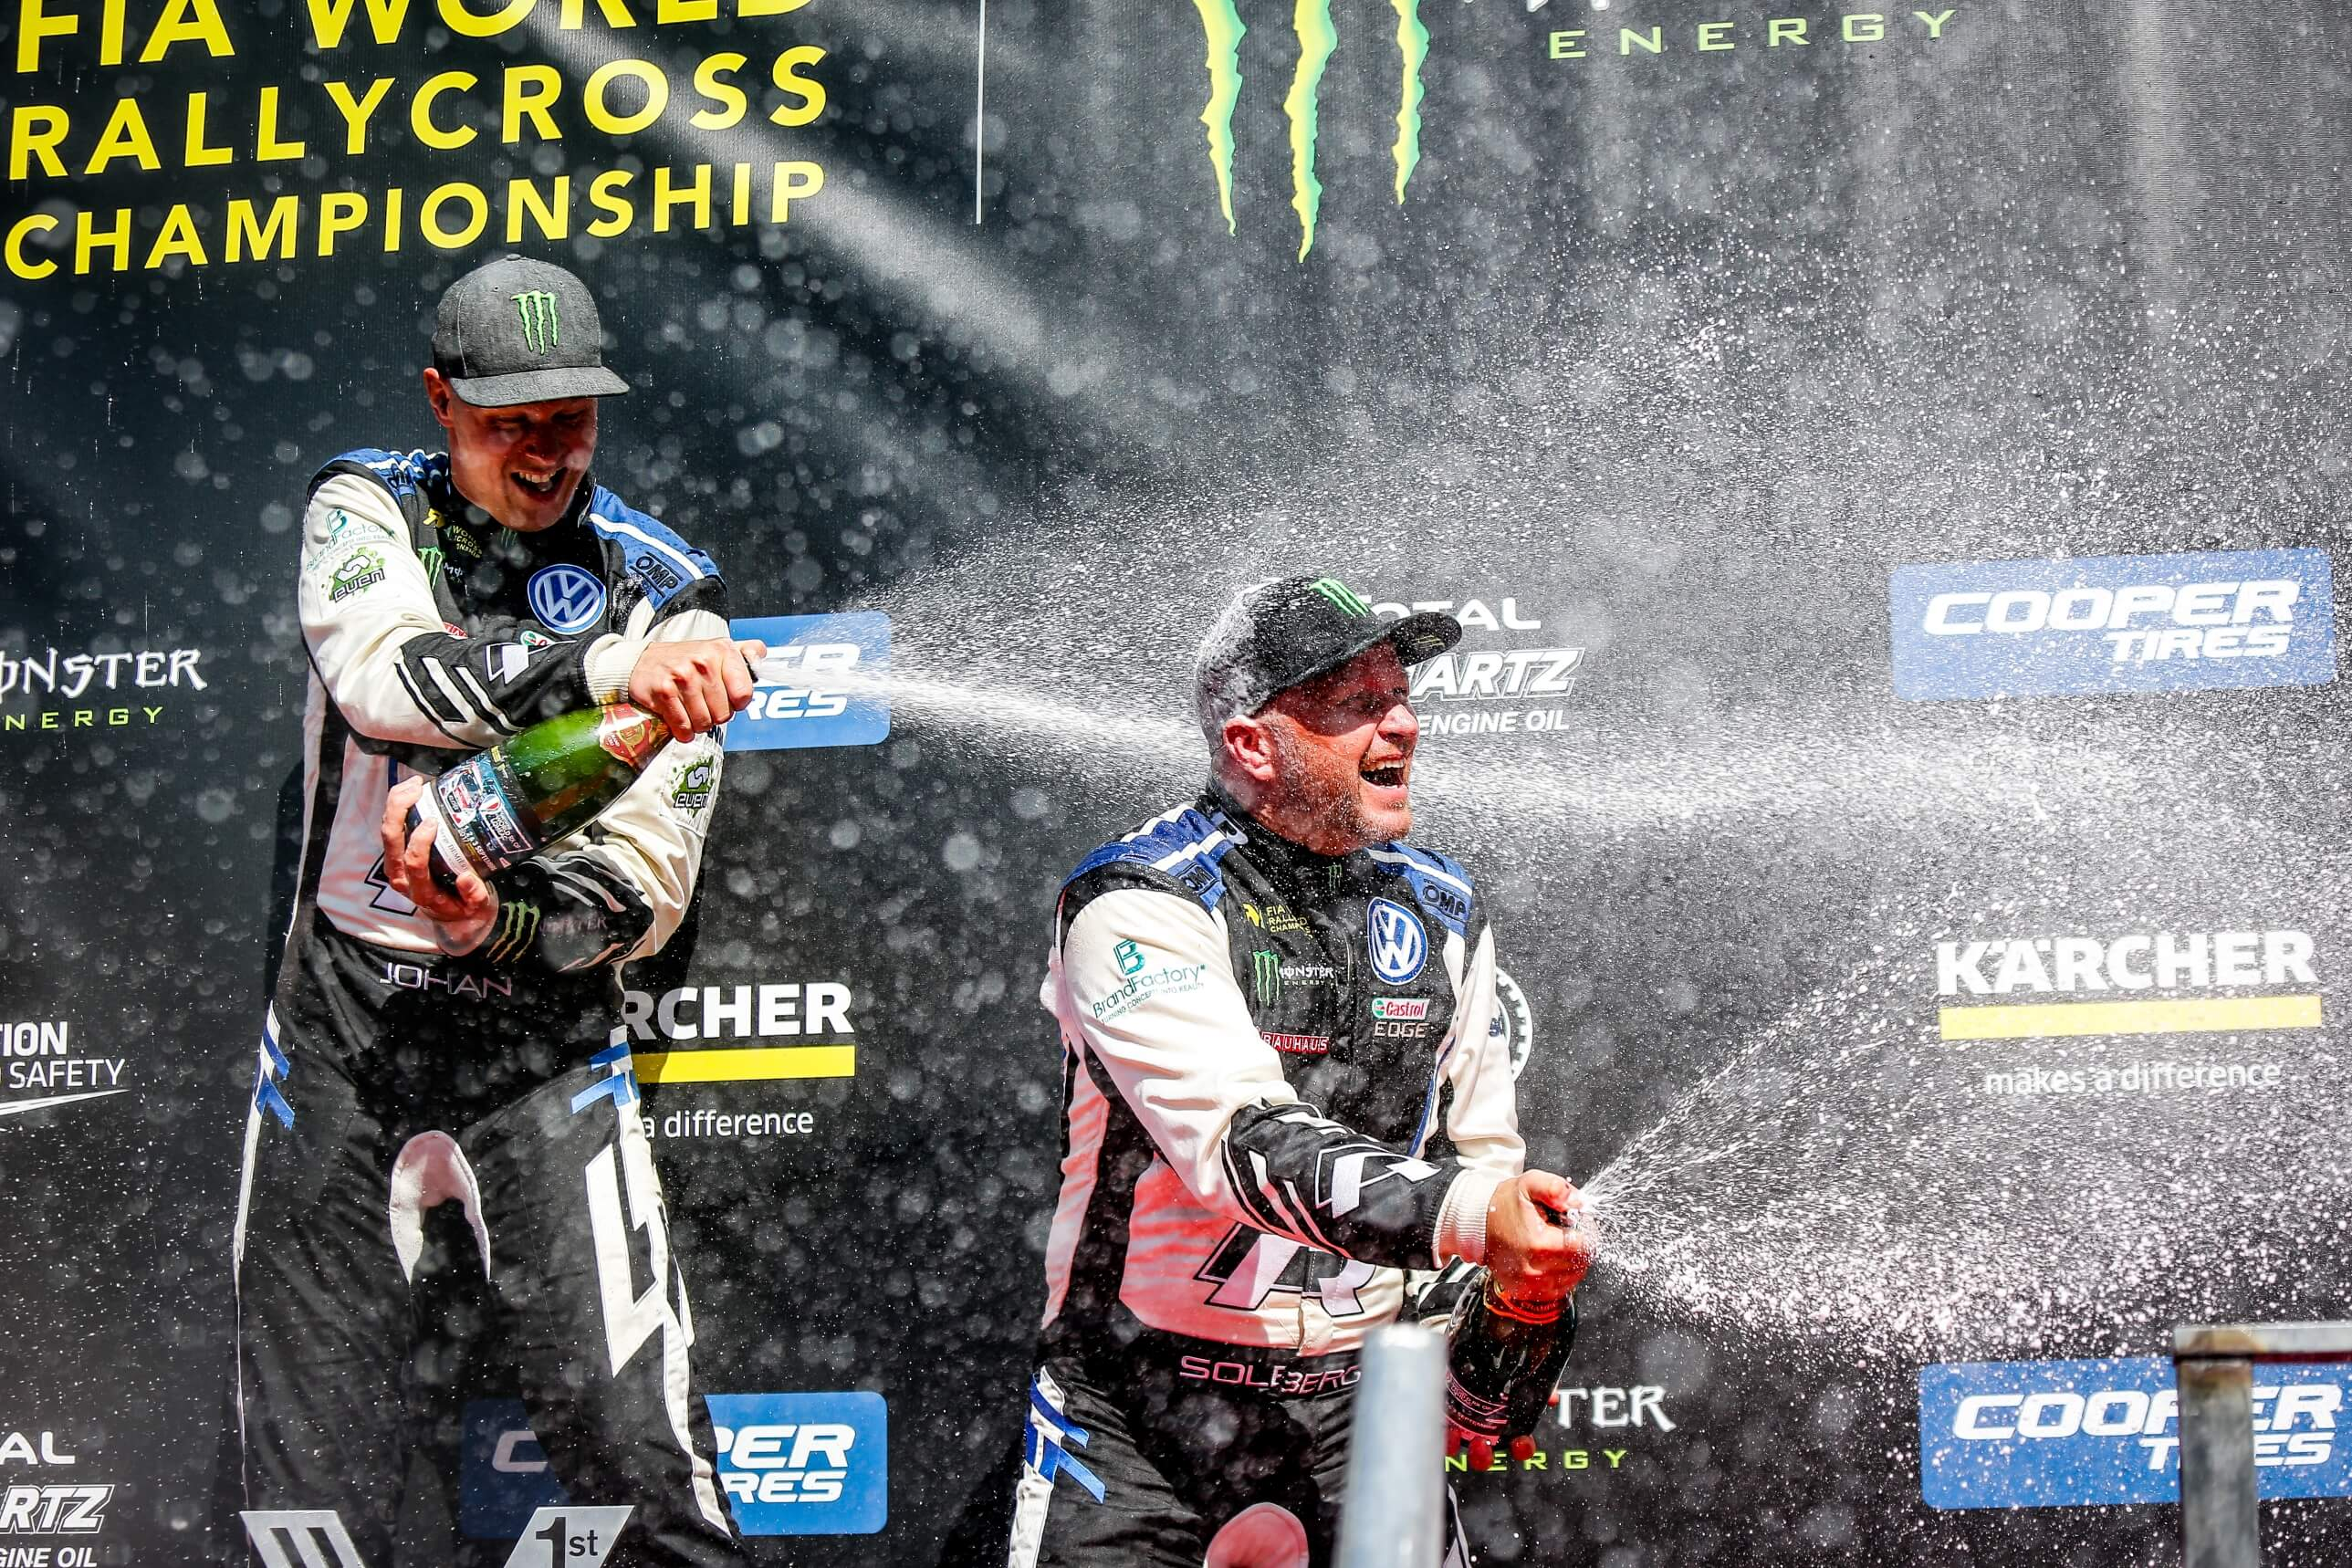 Podium - World RX of France 2018